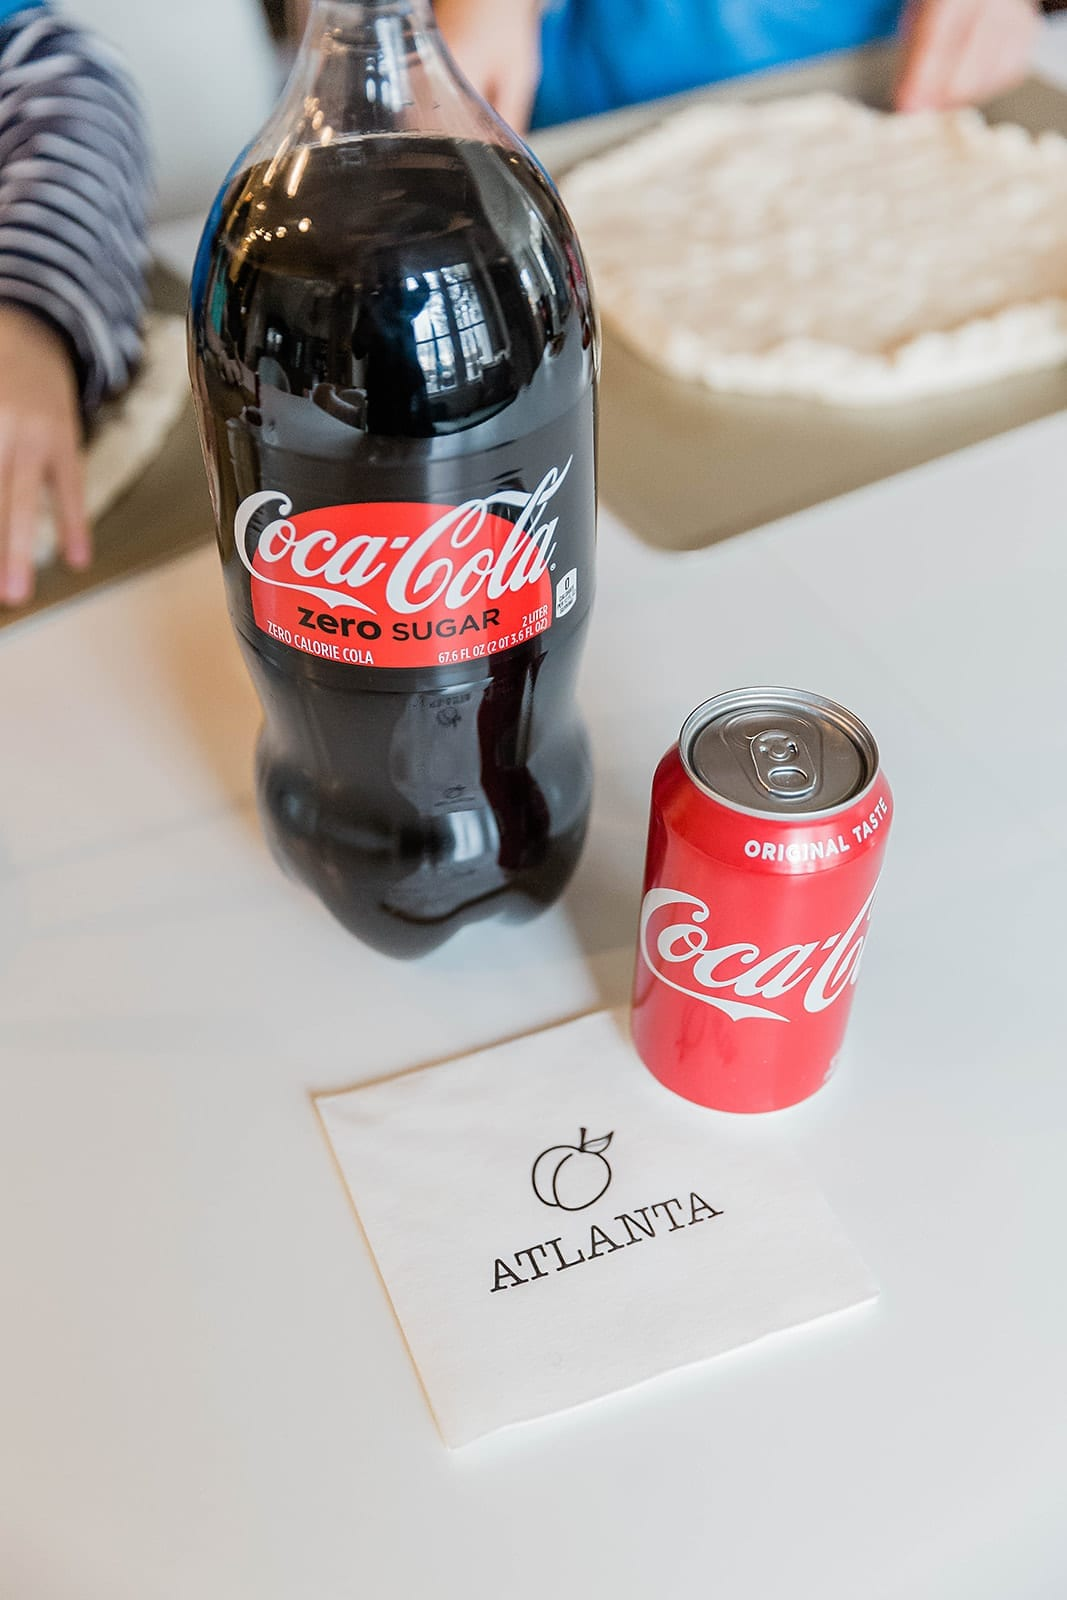 Atlanta Super Bowl Mercedes Stadium. Throw an Atlanta themed party with Coke and Publix for a fun family dinner and celebration!